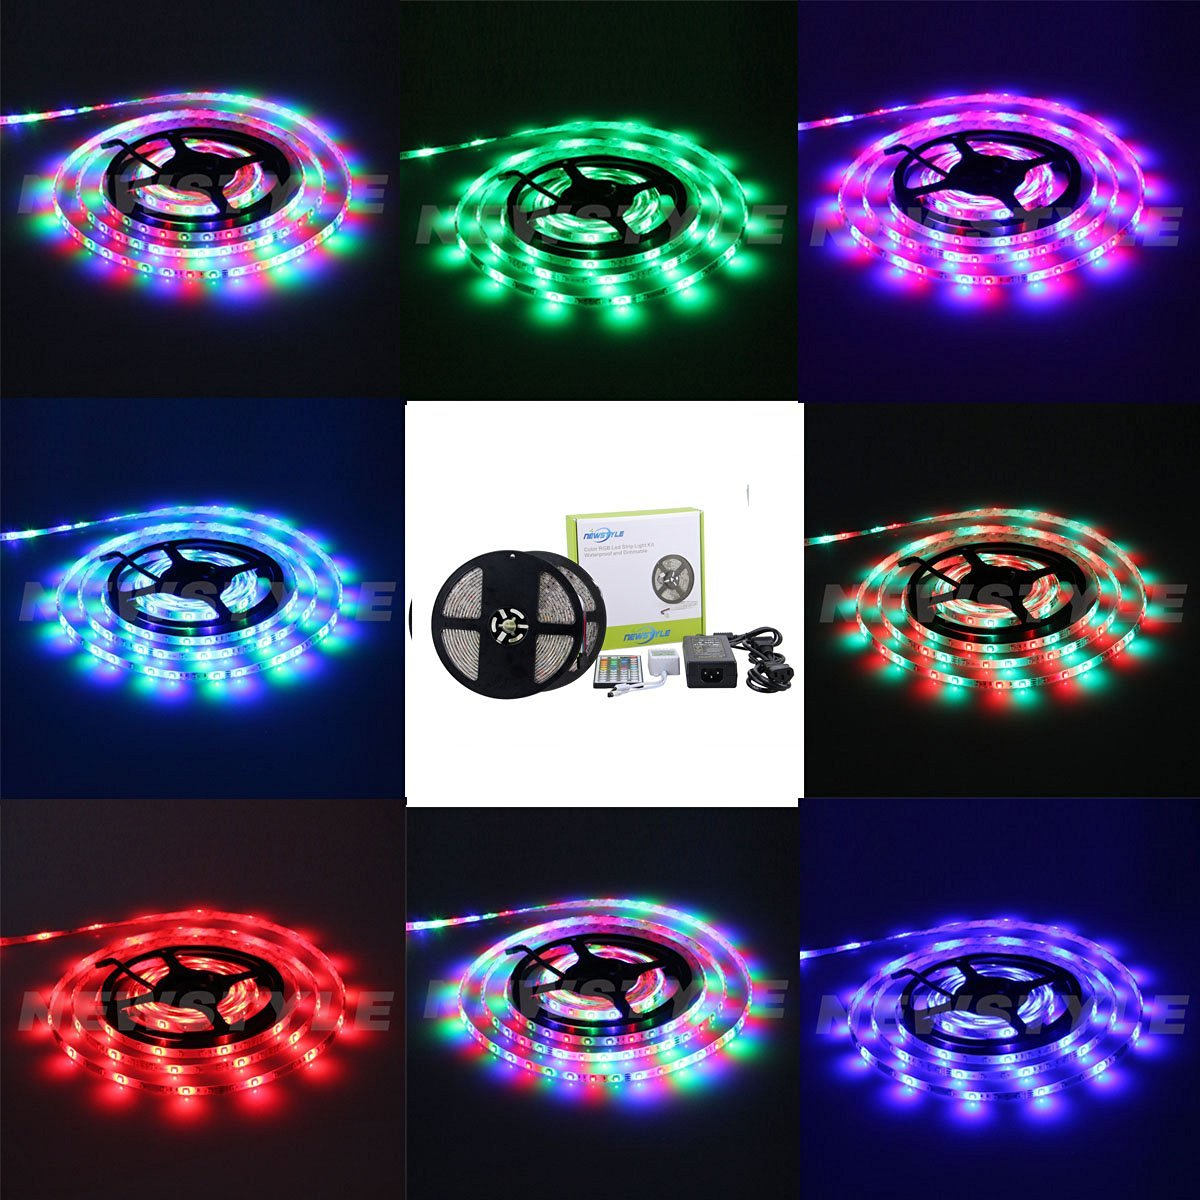 NEWSTYLE Two Rolls Waterproof Flexible LED Strip Light, LED Tape, 3528 SMD, 600 LEDs, 10M/32.8Ft, RGB Multi-colors, Pack of Two Reels 16.4-Feet 300 LED Light Strips & 44 Keys Infraed Remote Controller & 12V 5A Power Adapter